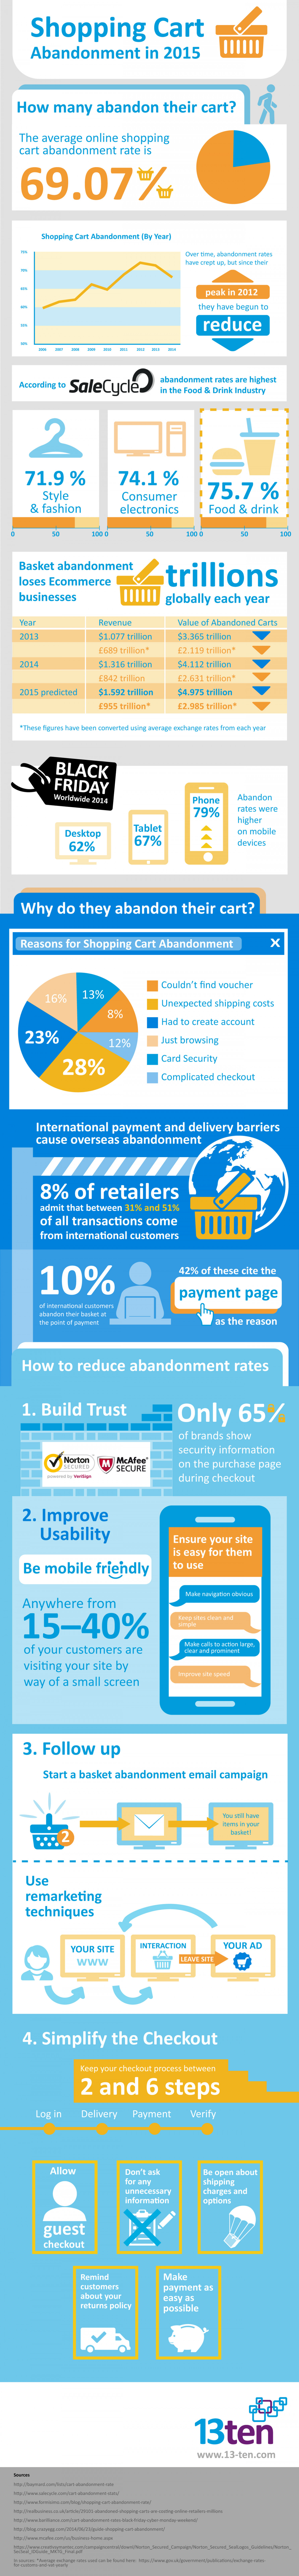 Shopping Cart Abandonment in 2015 Infographic